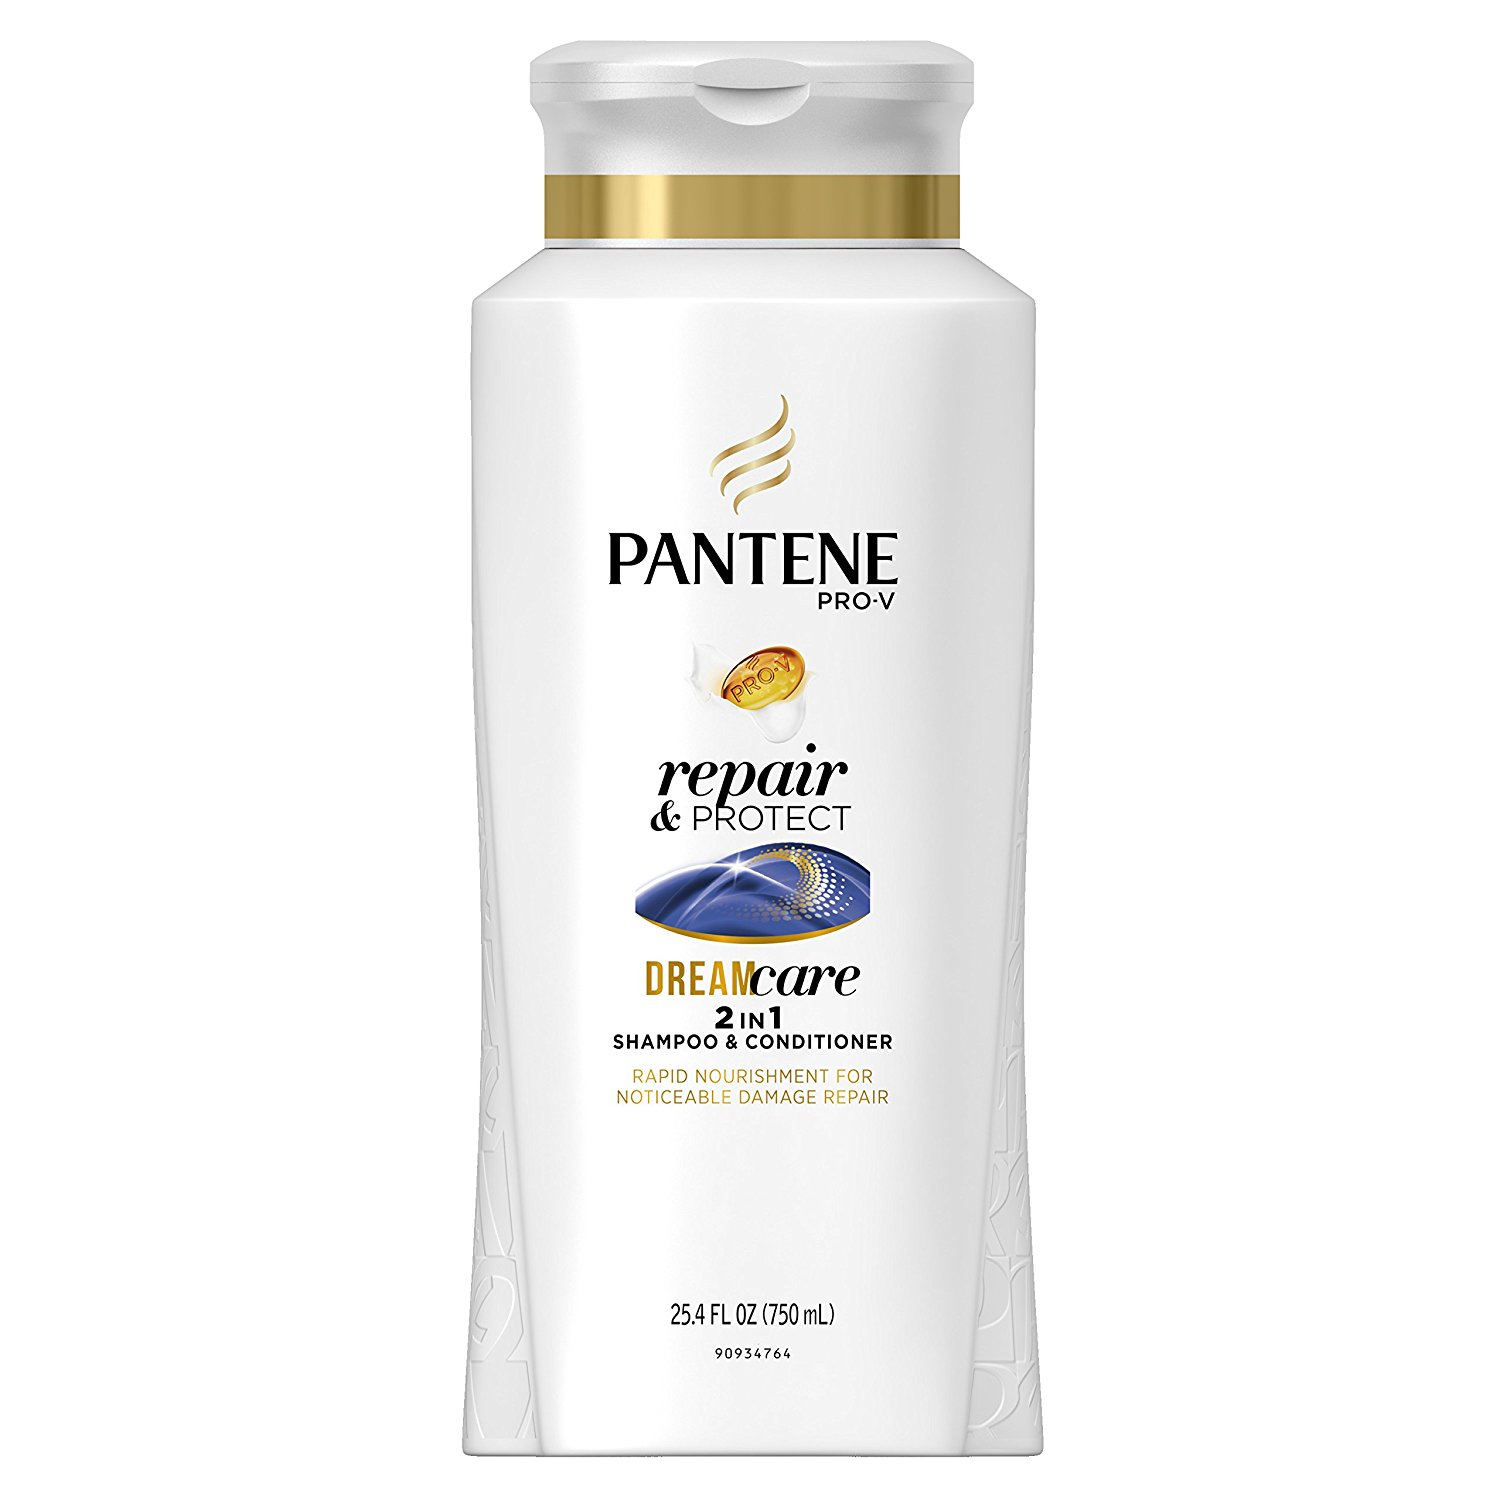 Pantene Pro-V Repair & Protect 2 In 1 Shampoo & Conditioner 25.4 Fl Oz (packaging may vary)